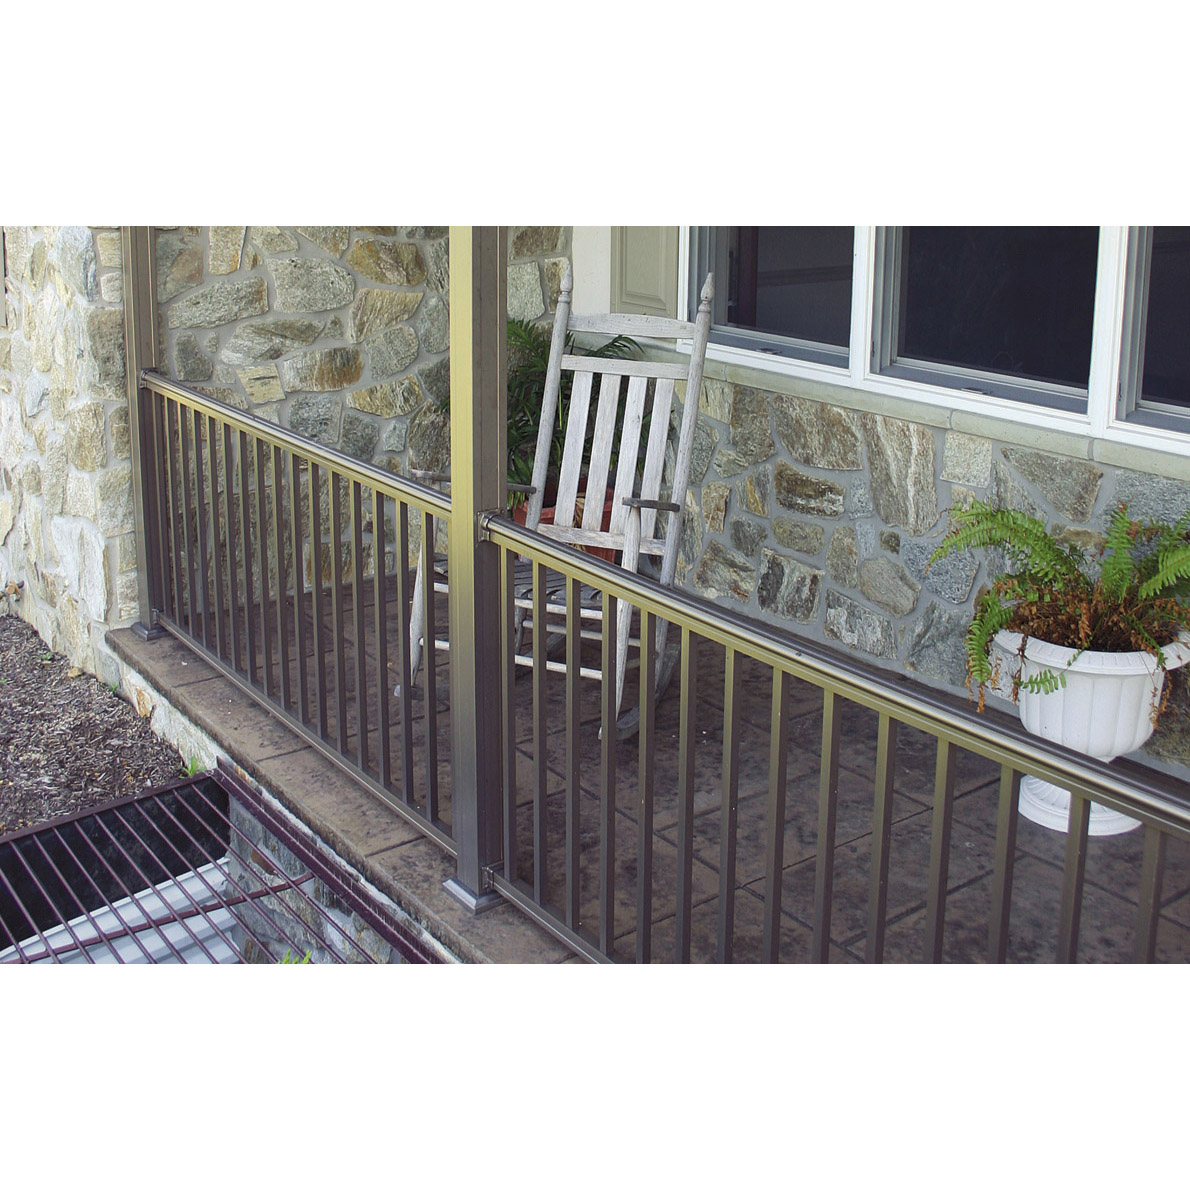 Arabian Railing with Square Balusters